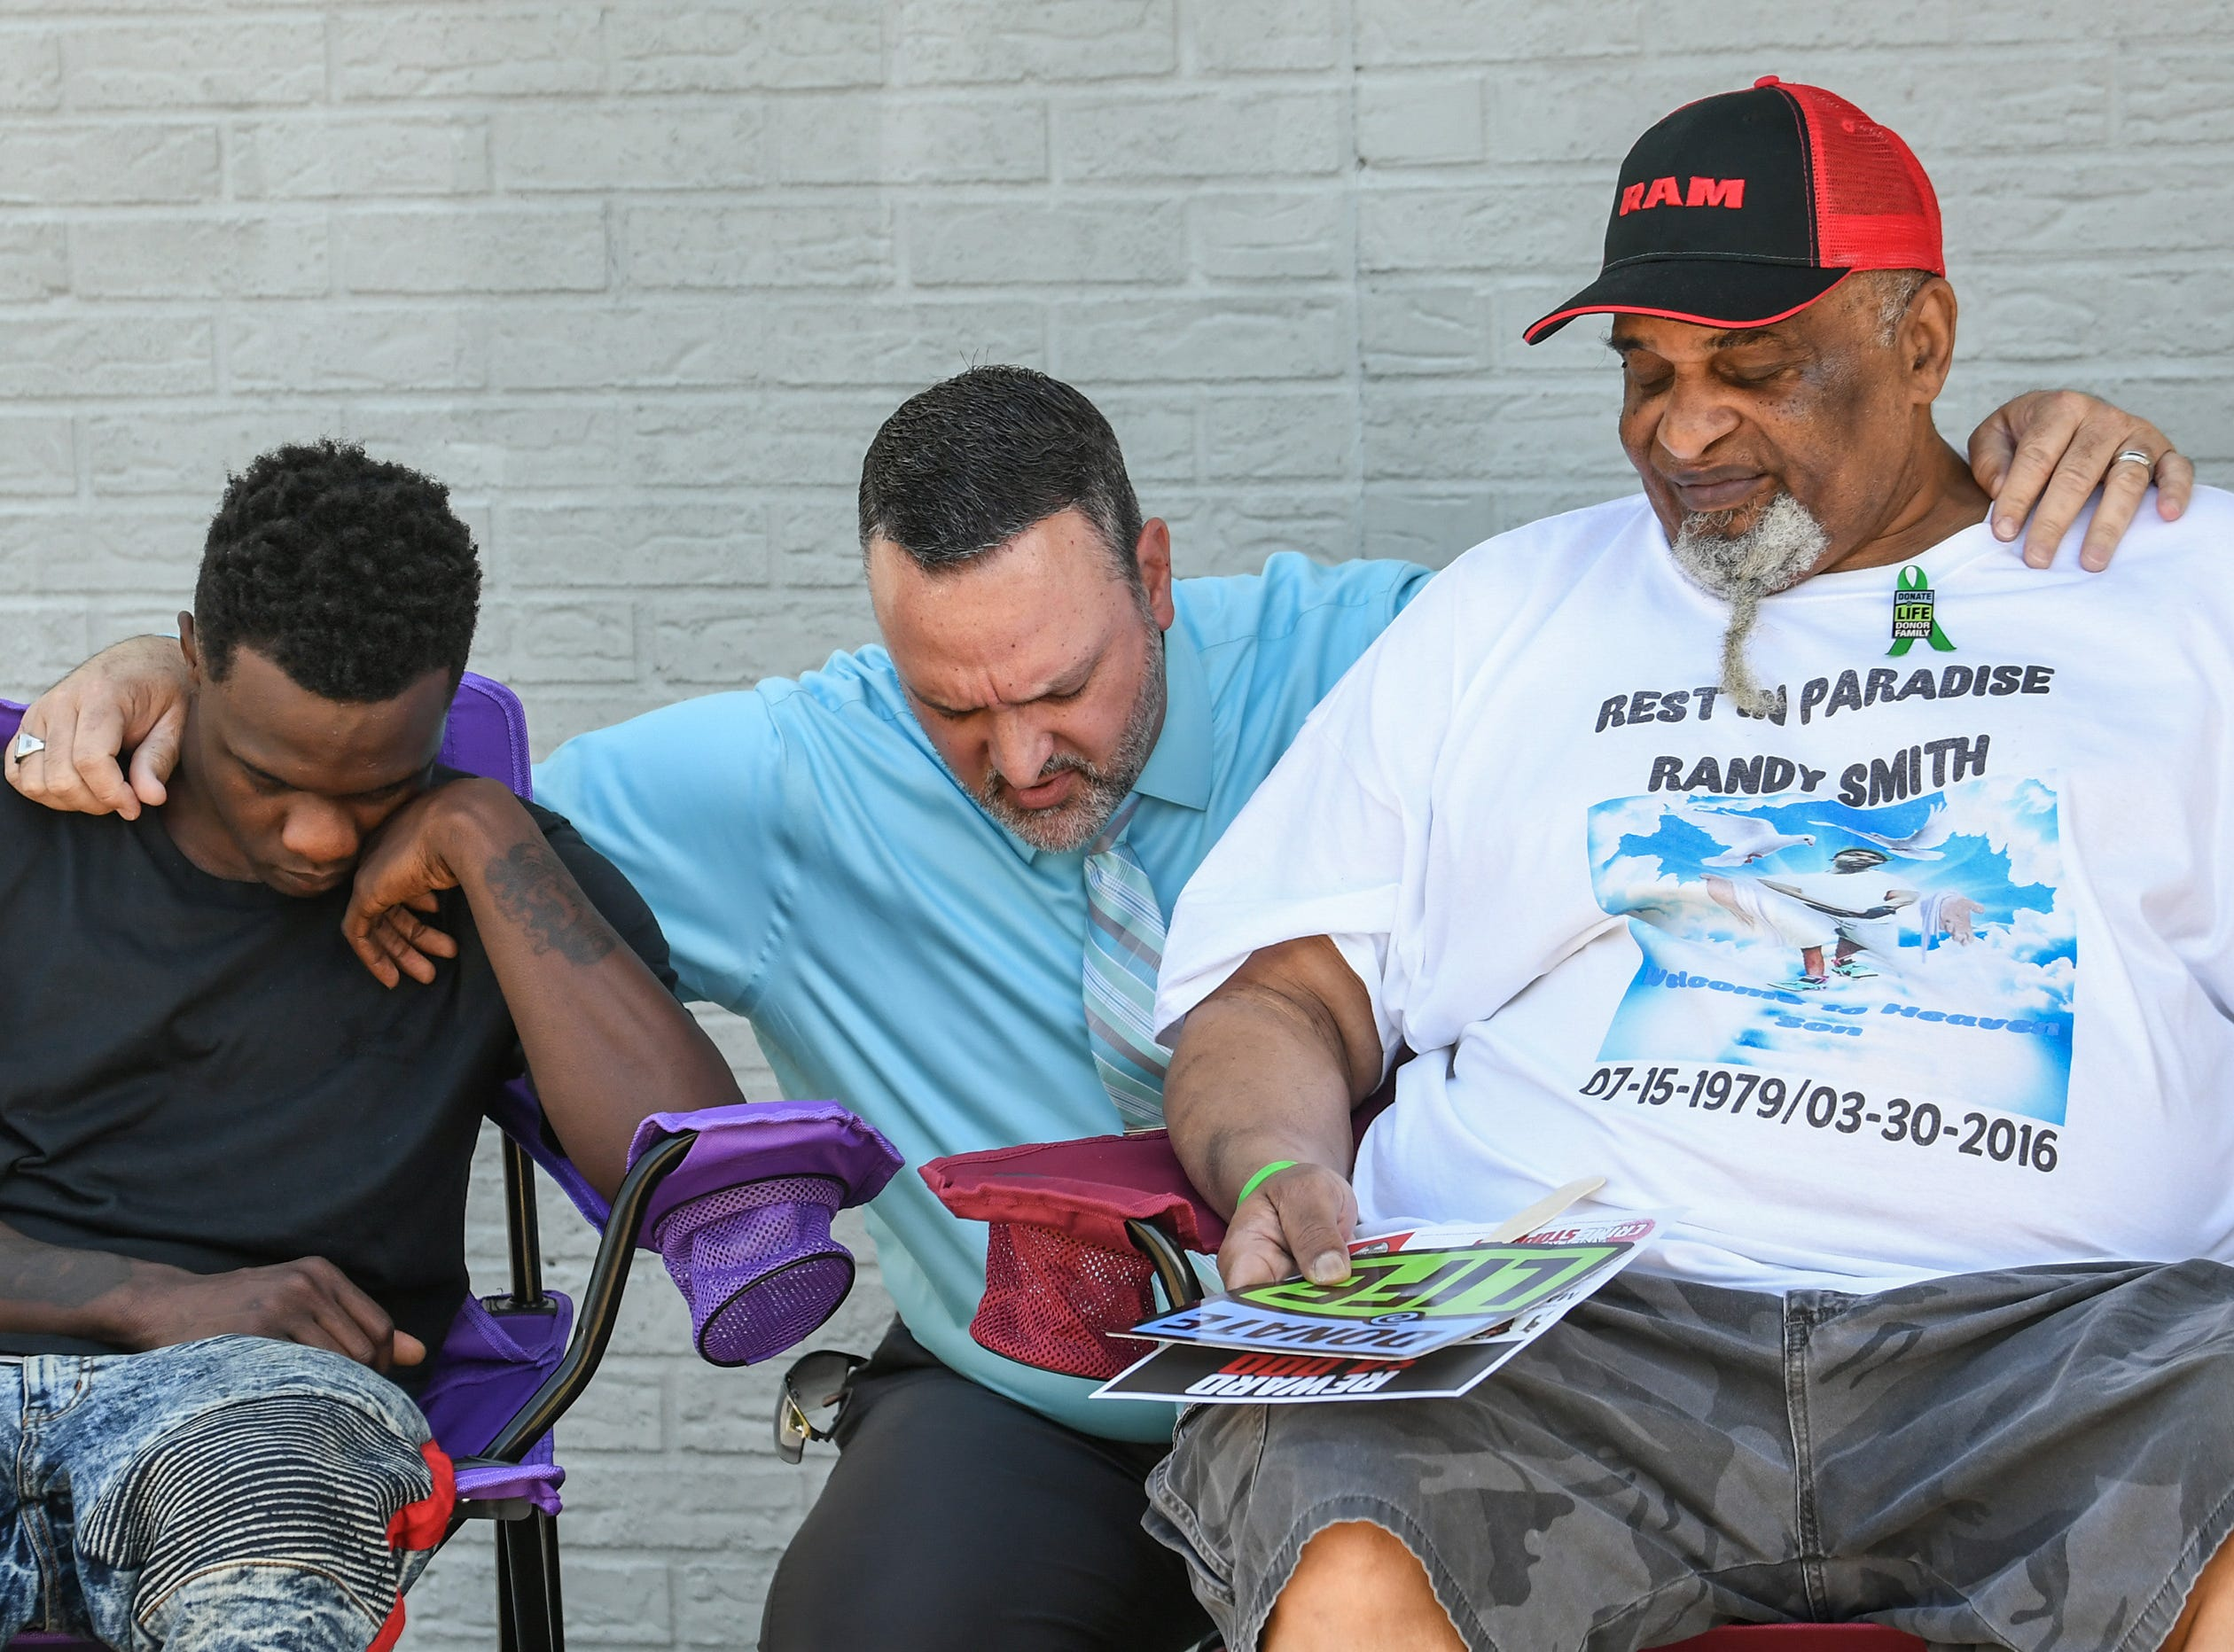 Stephen Combs, middle, Anderson Area Crime Stoppers President, prays with Montrell Jones, left, son of the late Randy Smith, and father James Smith, right, after a press conference asking the public for tips in the cold case homicide case. Randy Smith was shot in a drive-by shooting in March 2016.